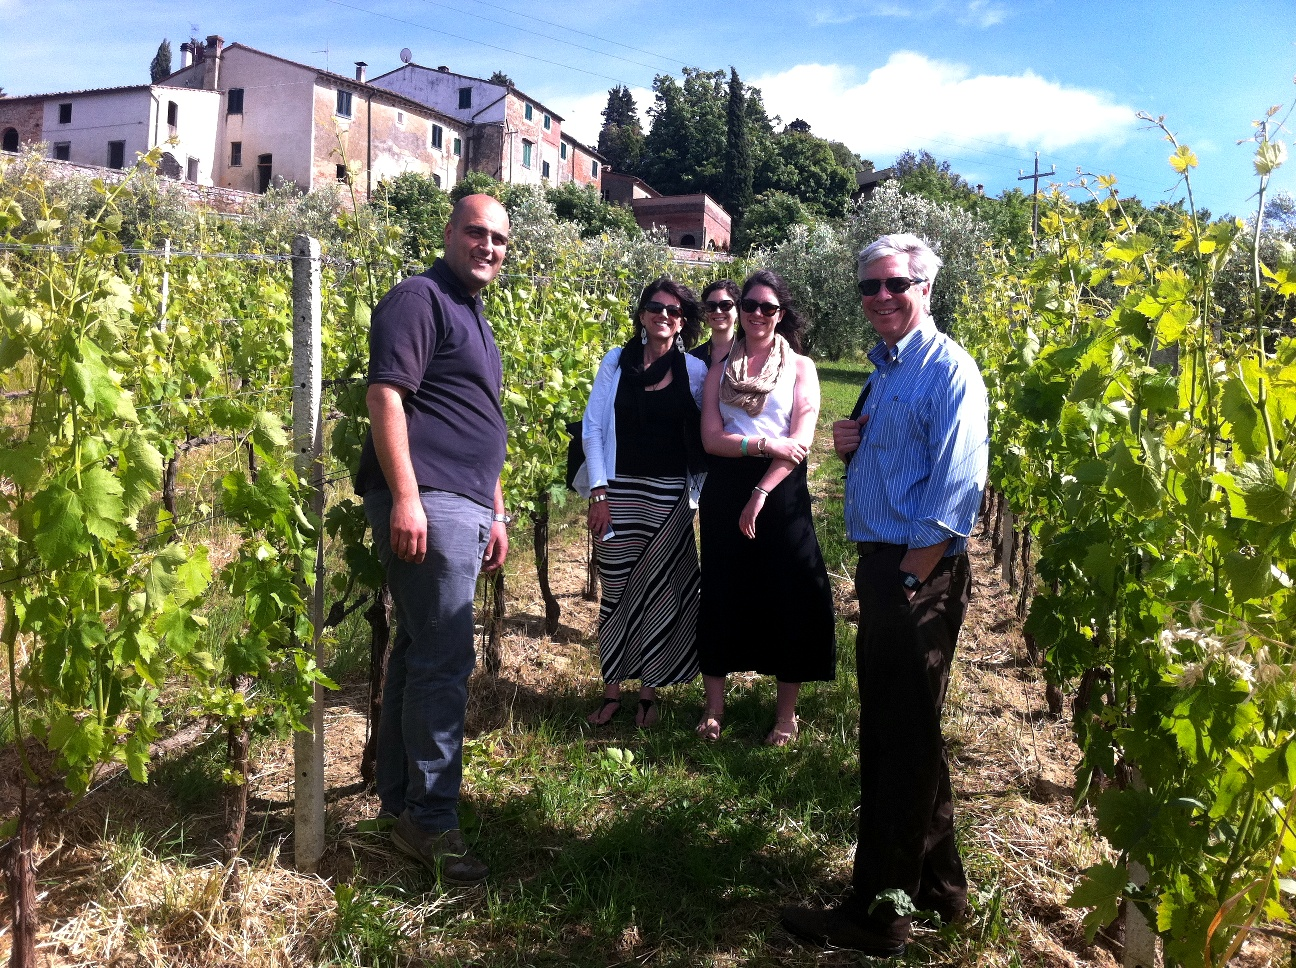 A group photo in the vineyard